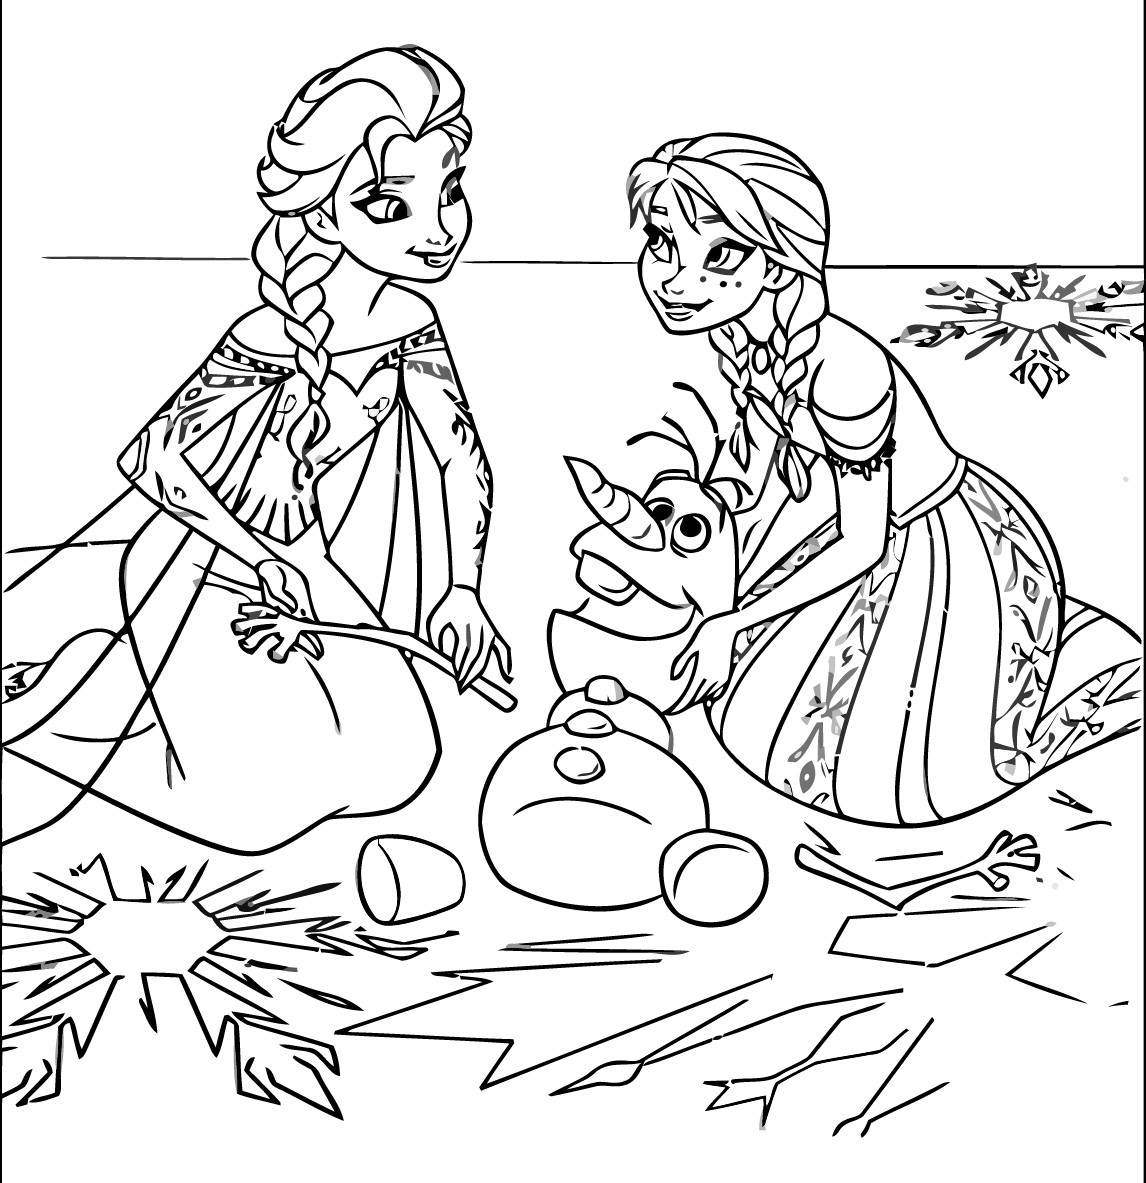 Inspiring Frozen Coloring Pages Line Colouring to Cure Generous Gallery Of Engaging Line Coloring Pages for Kids 19 Children Elegant Paper to Print